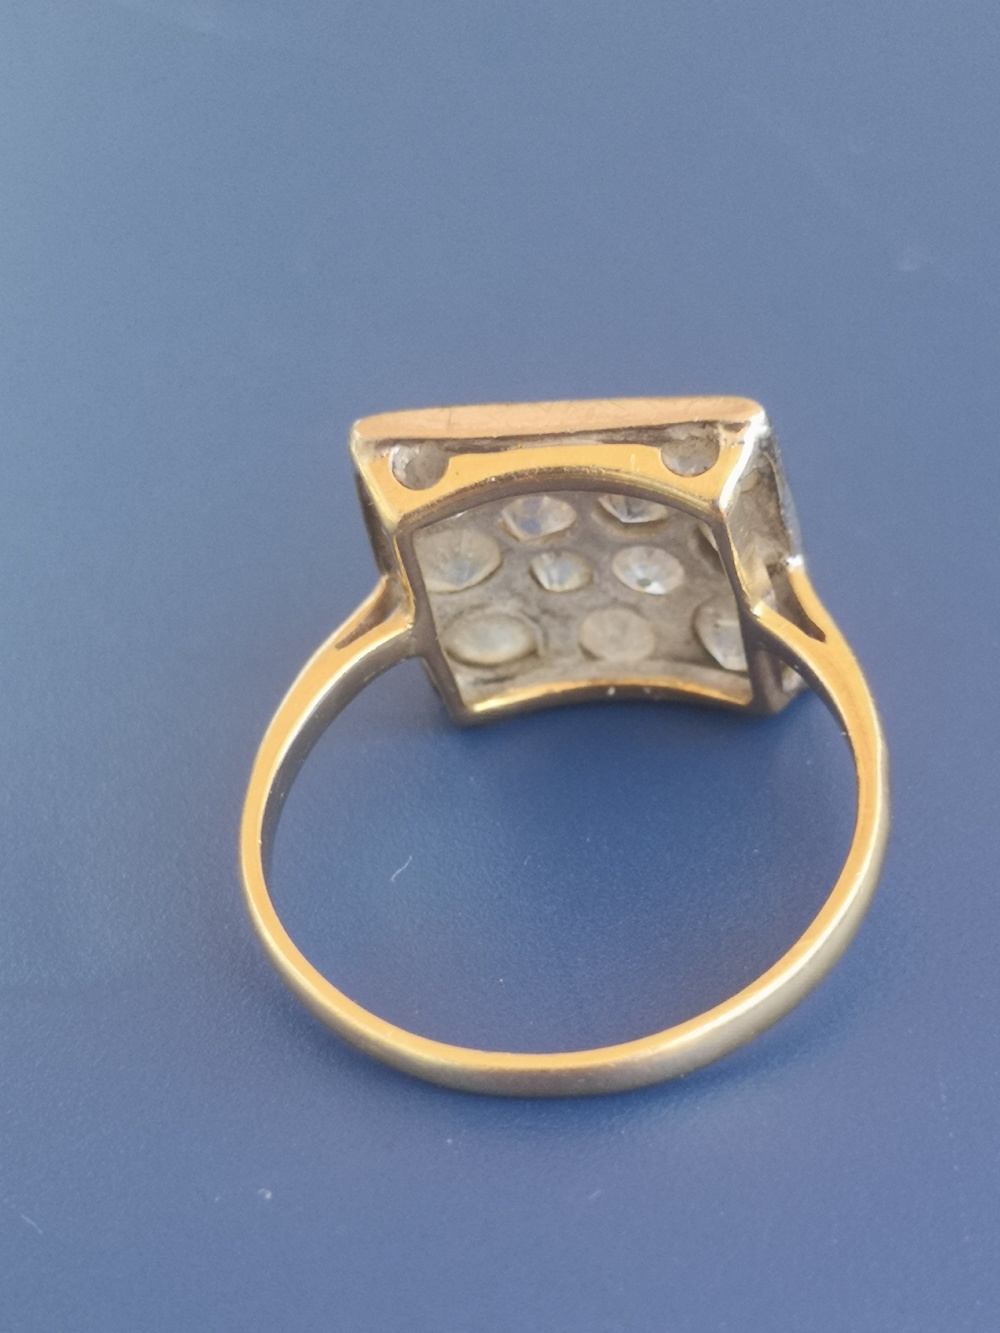 A diamond dress ring having a square pave setting on yellow metal shank. Finger size L. - Image 4 of 5